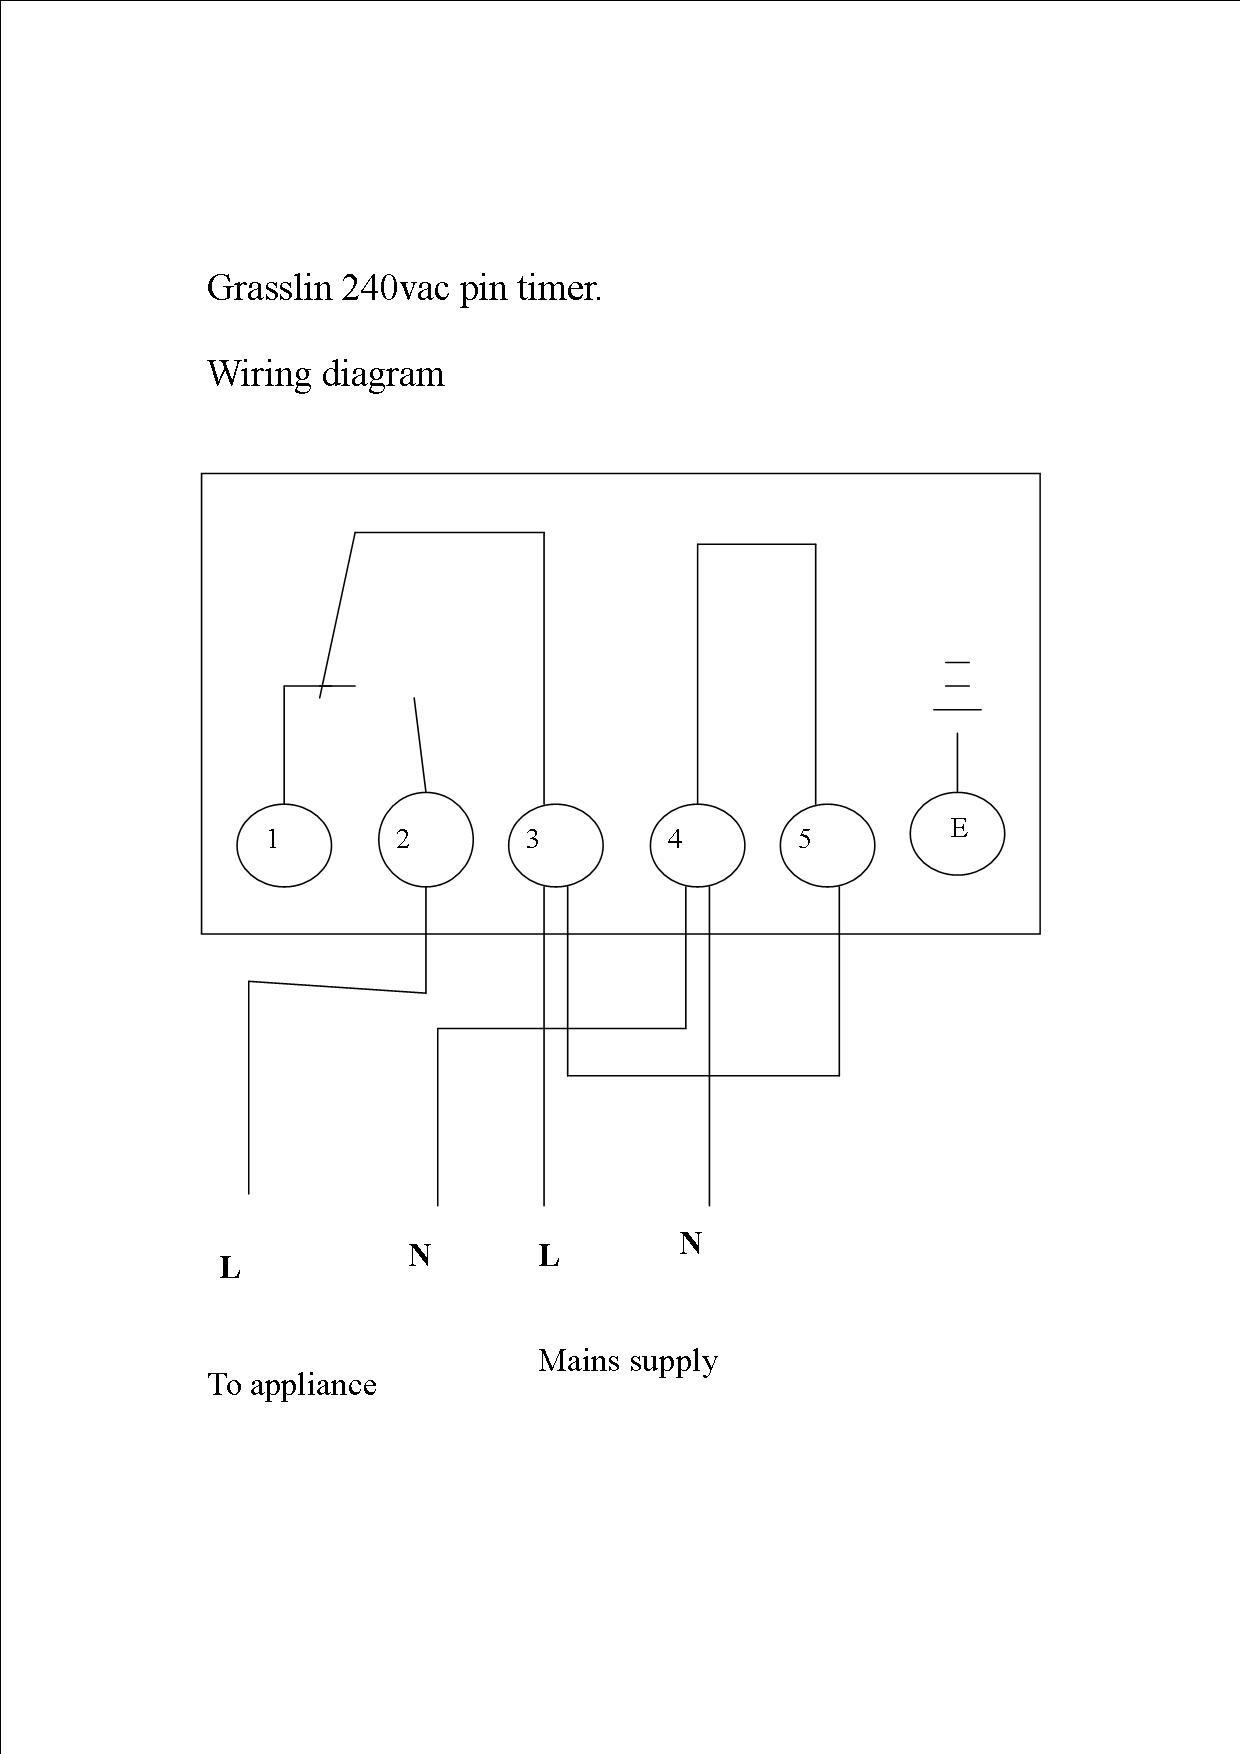 HELP, how to wire contactor for switching HID lights-wiring-grasslin-timer.jpg